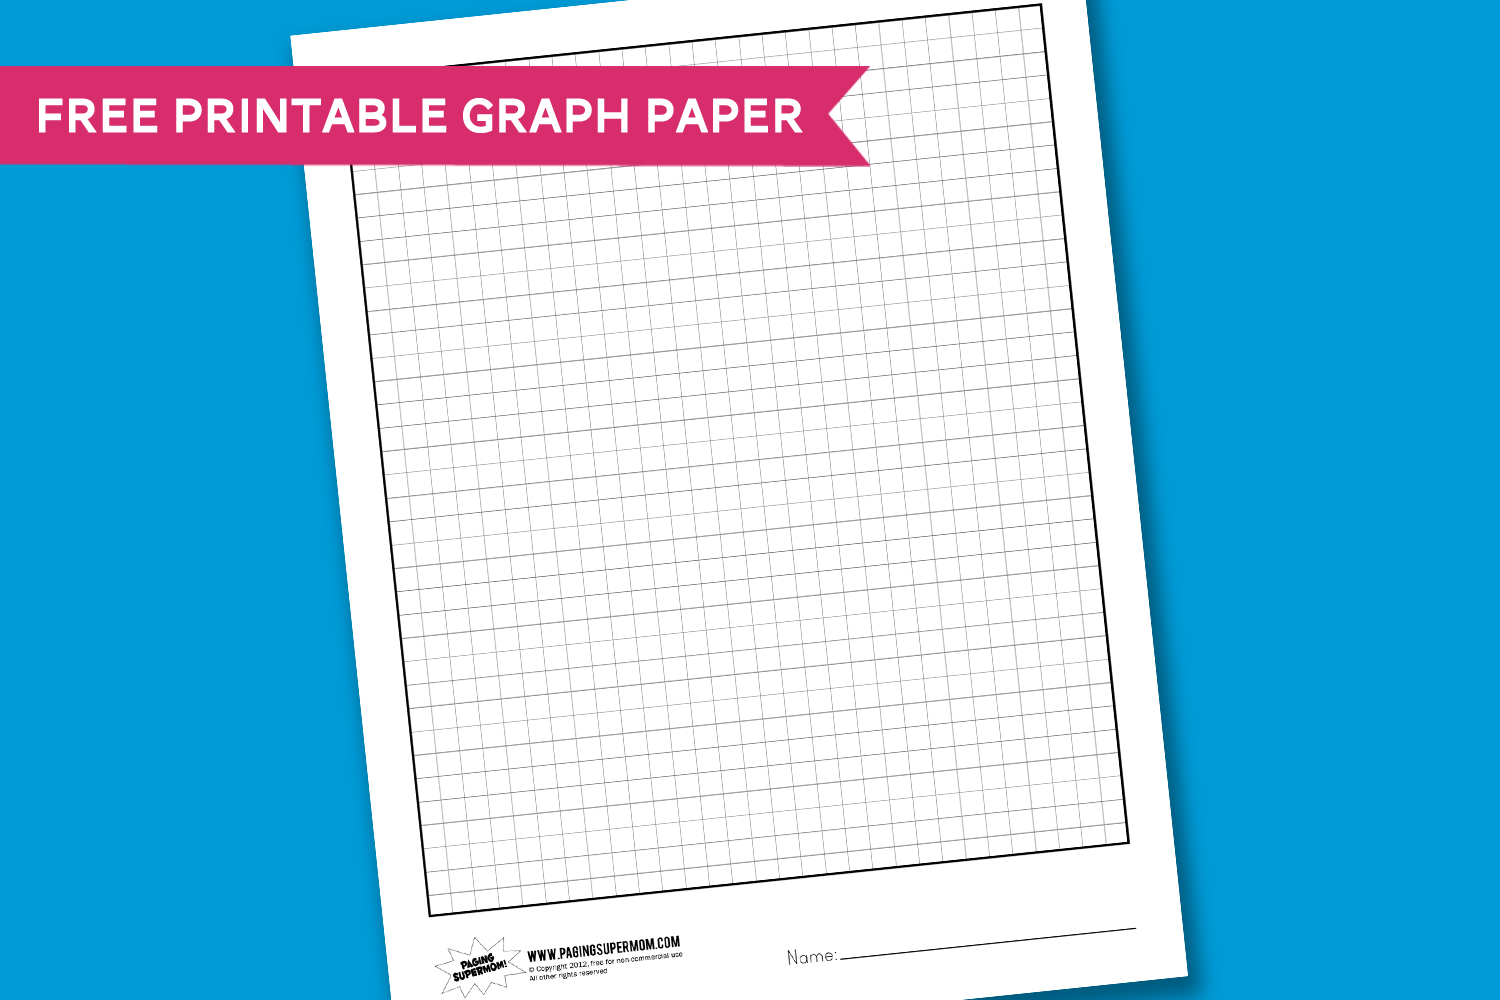 Worksheet Wednesday: Graph Paper - Paging Supermom